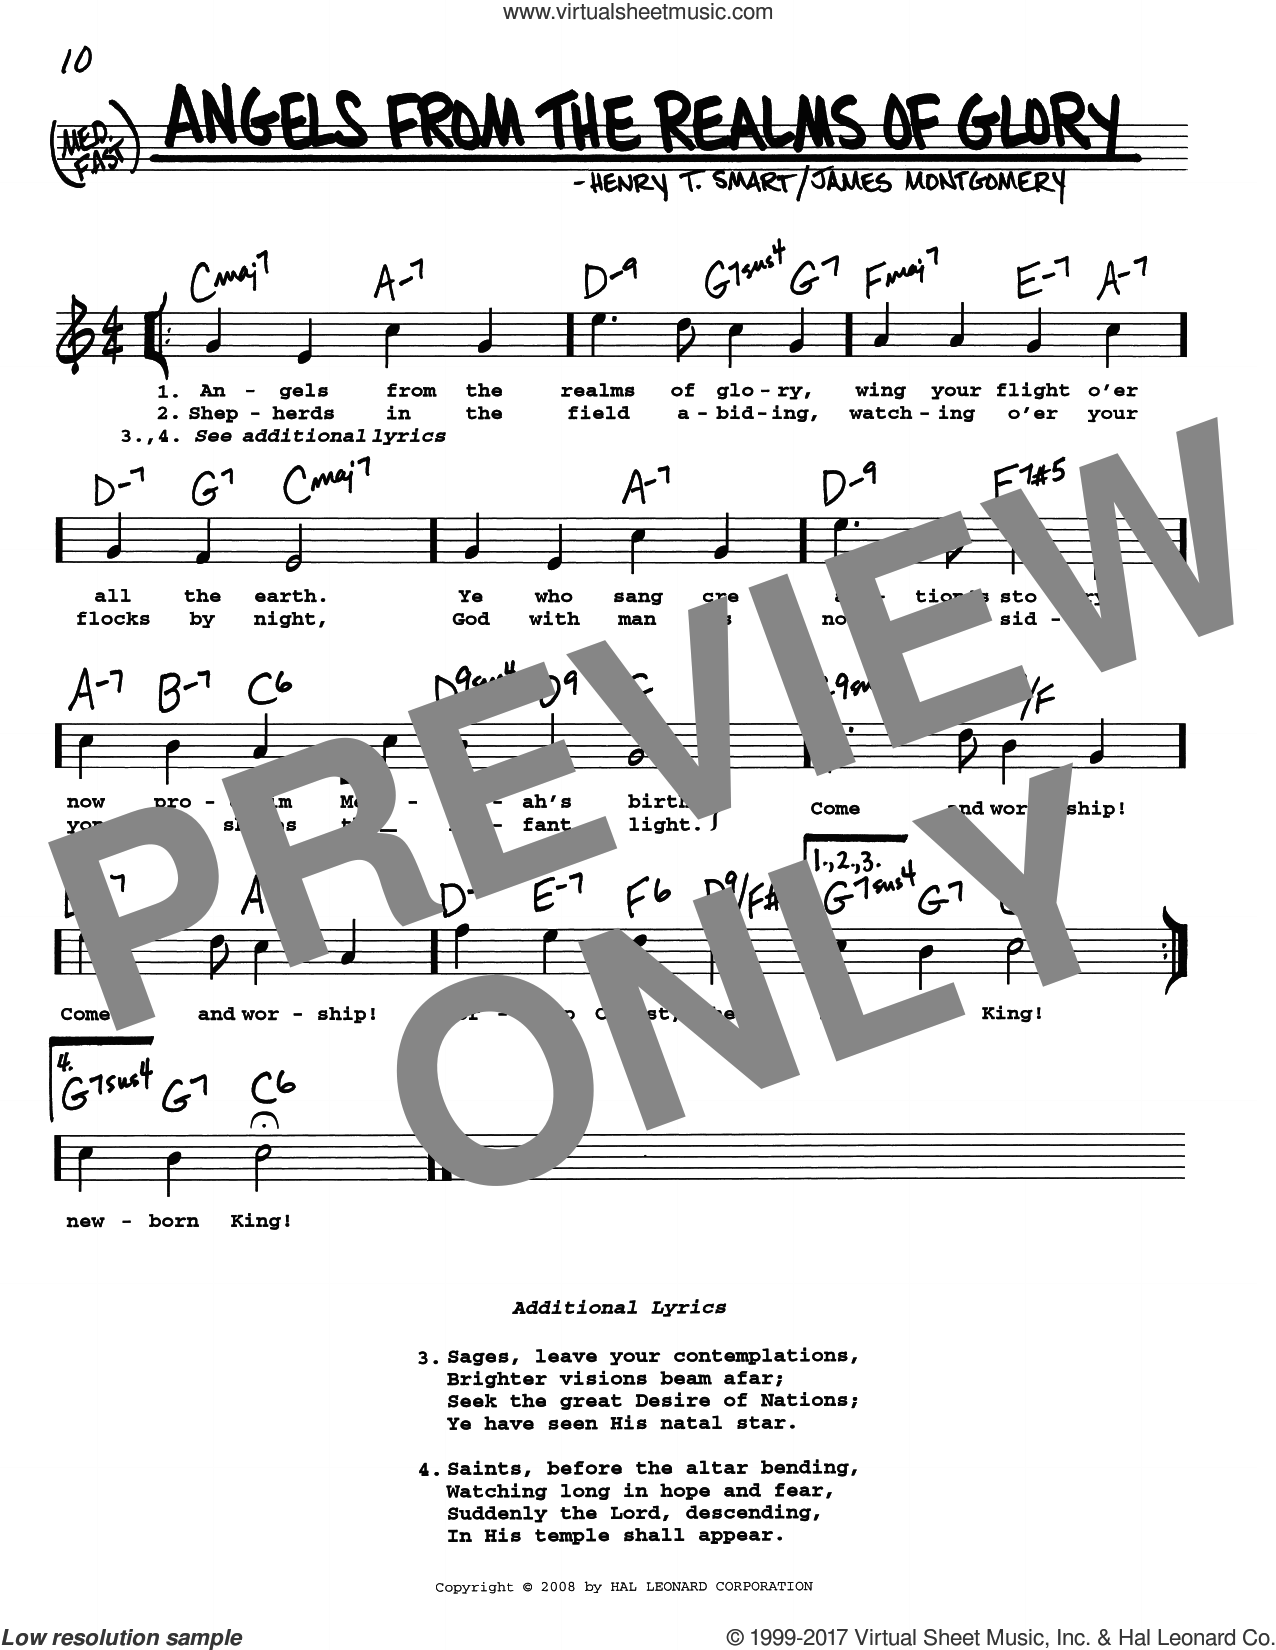 Angels From The Realms Of Glory sheet music for voice and other instruments (real book with lyrics) by James Montgomery and Henry T. Smart, intermediate skill level